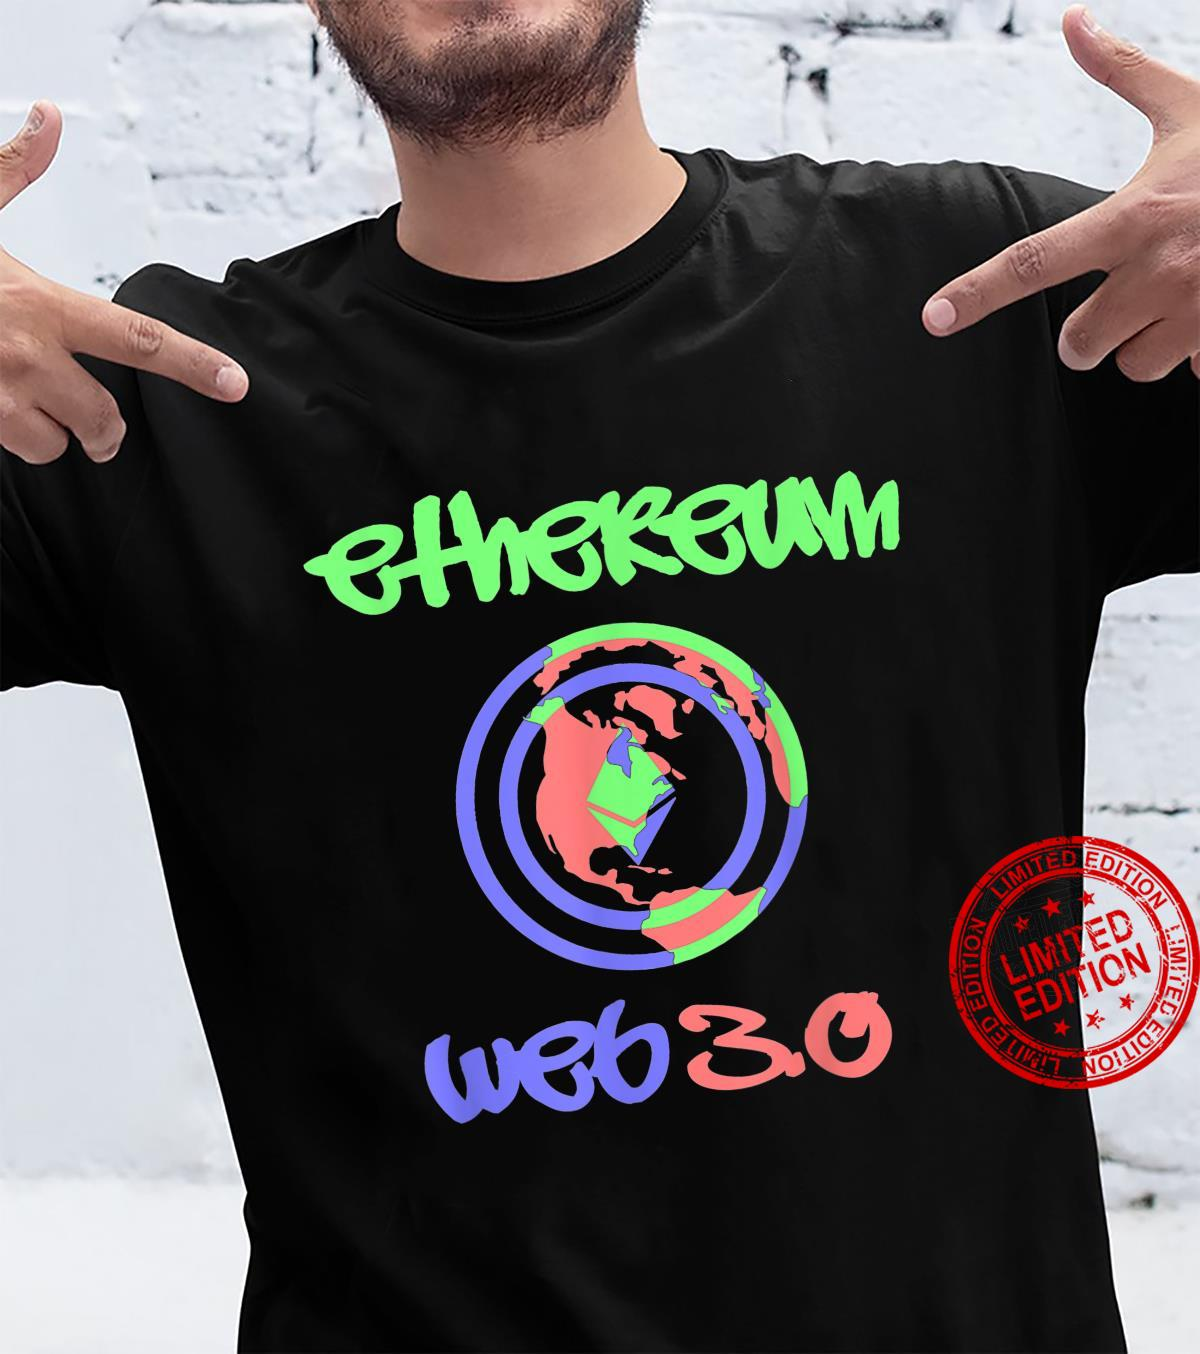 Ethereum Web 3.0 Cool GraffitiStyle Cryptocurrency Shirt